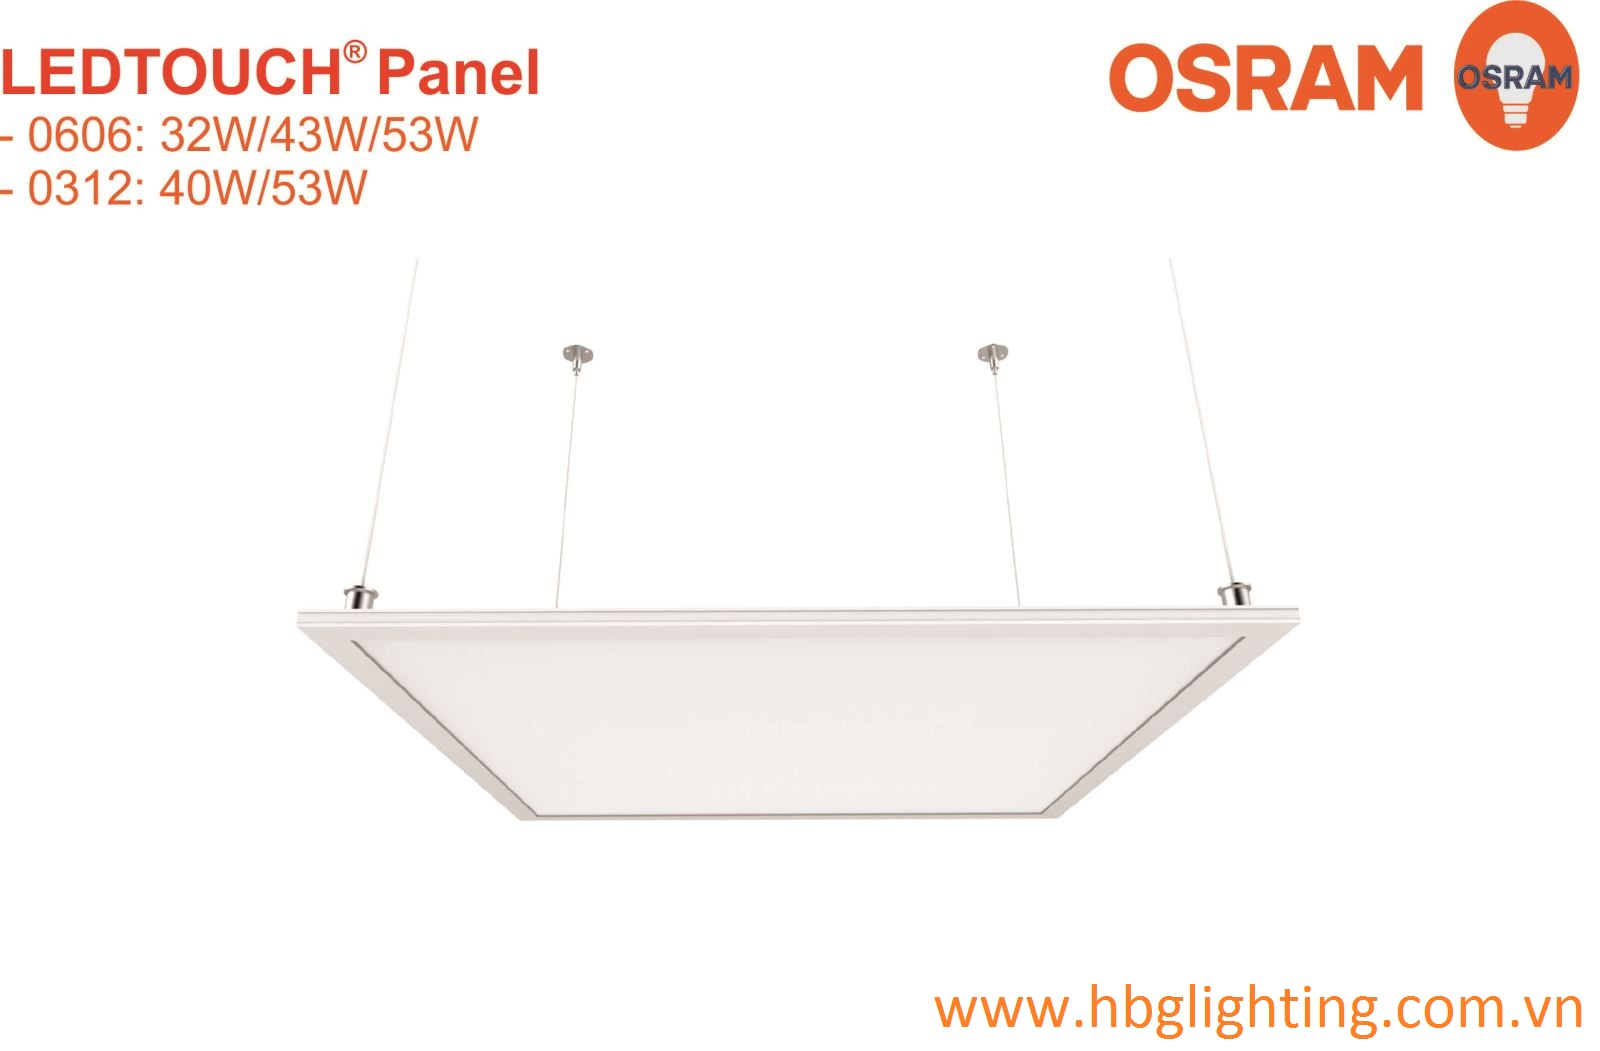 LEDTOUCH PANEL 0312 OSRAM